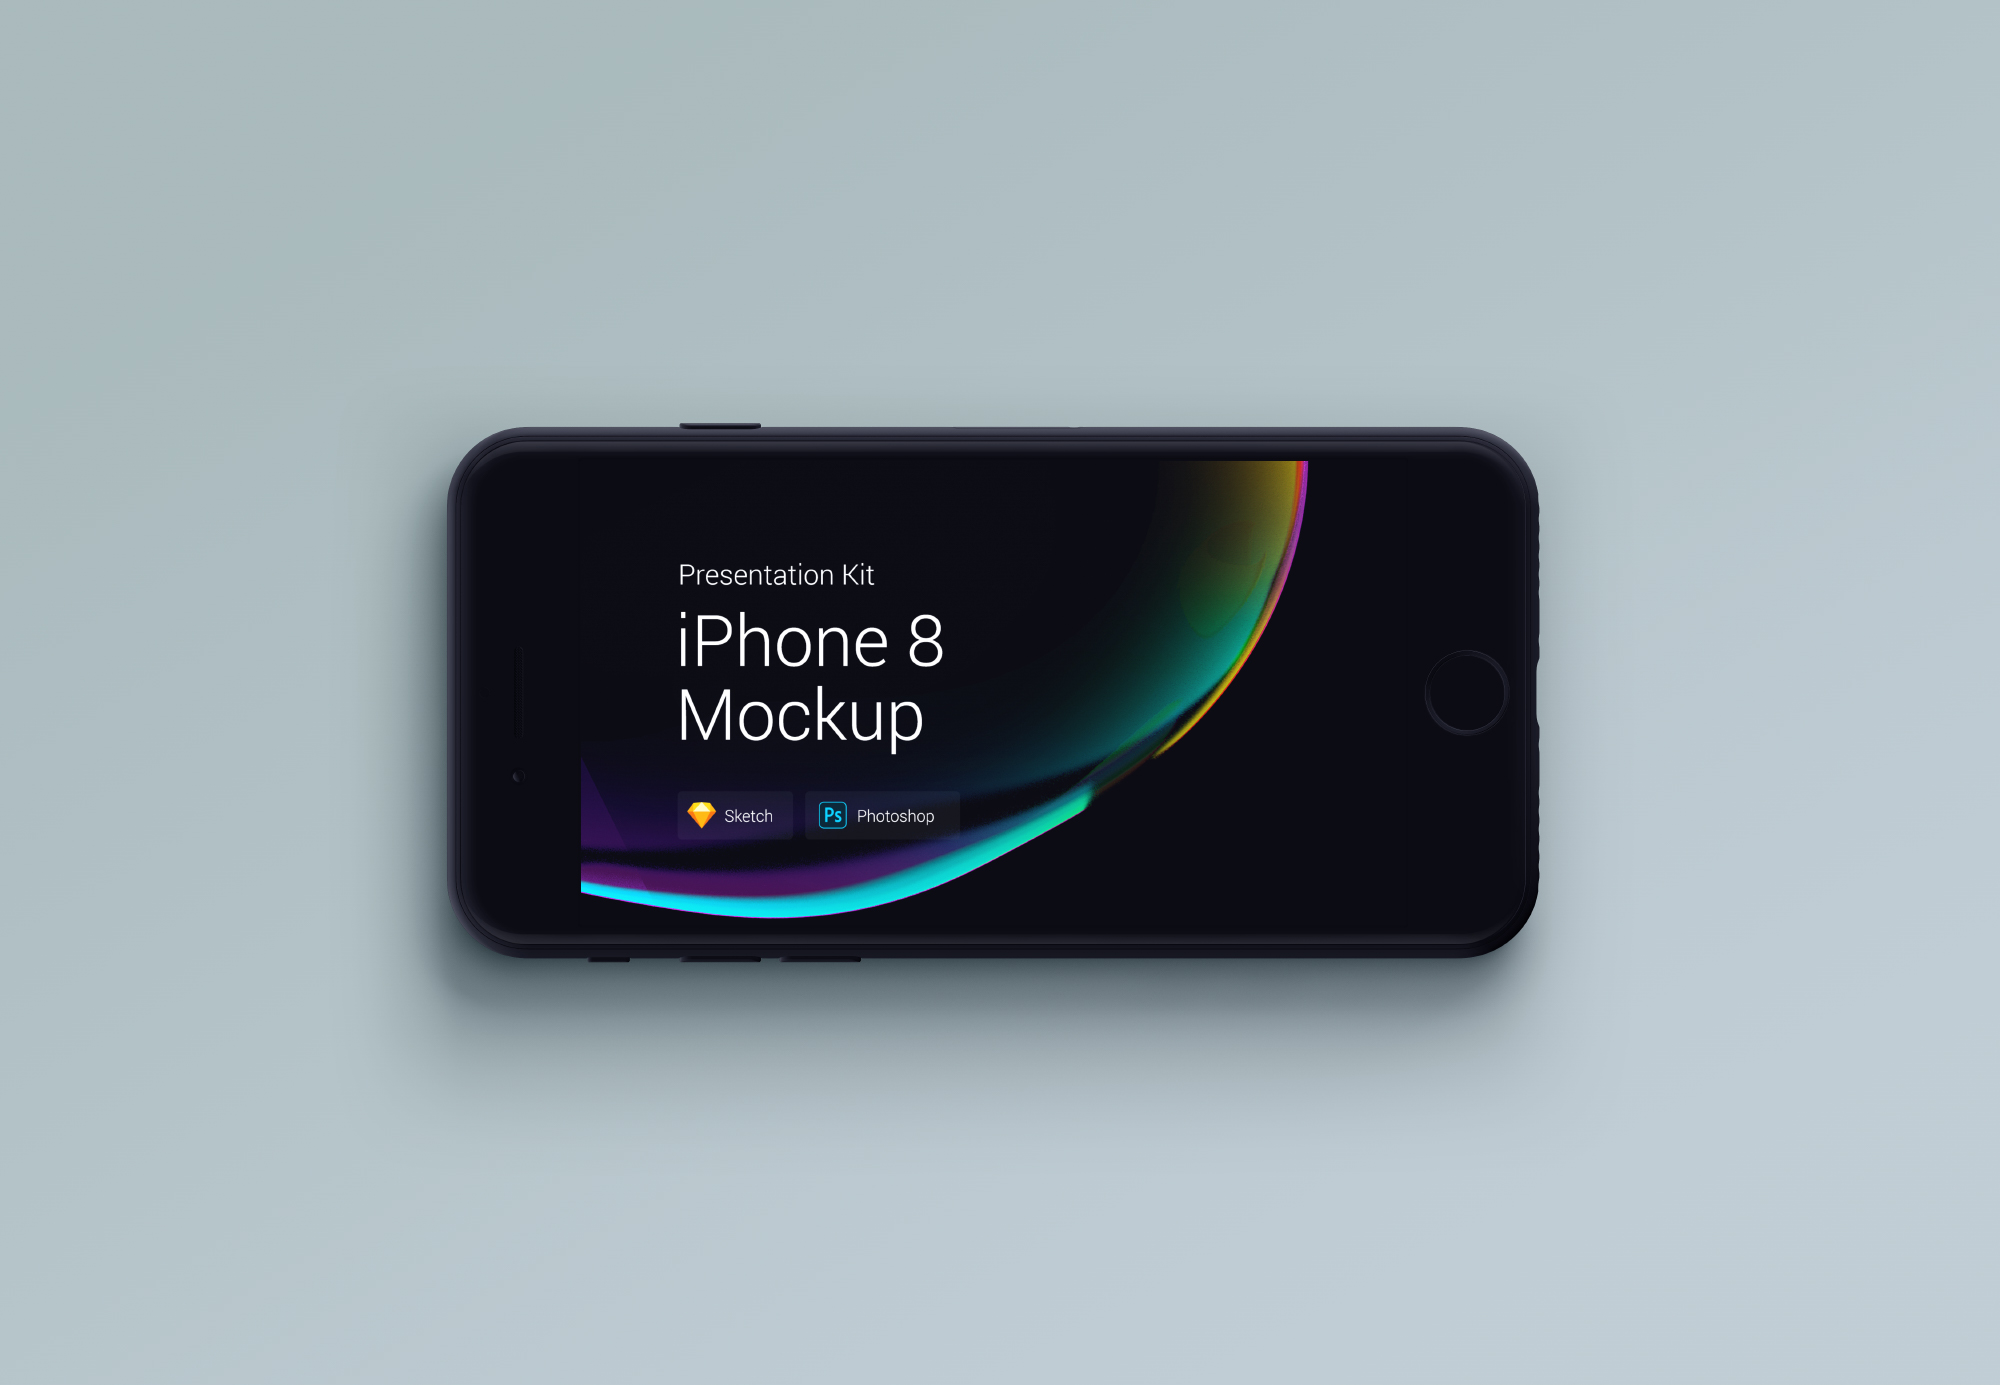 Download Apple iPhone 8 Mockup for Sketch and Photoshop